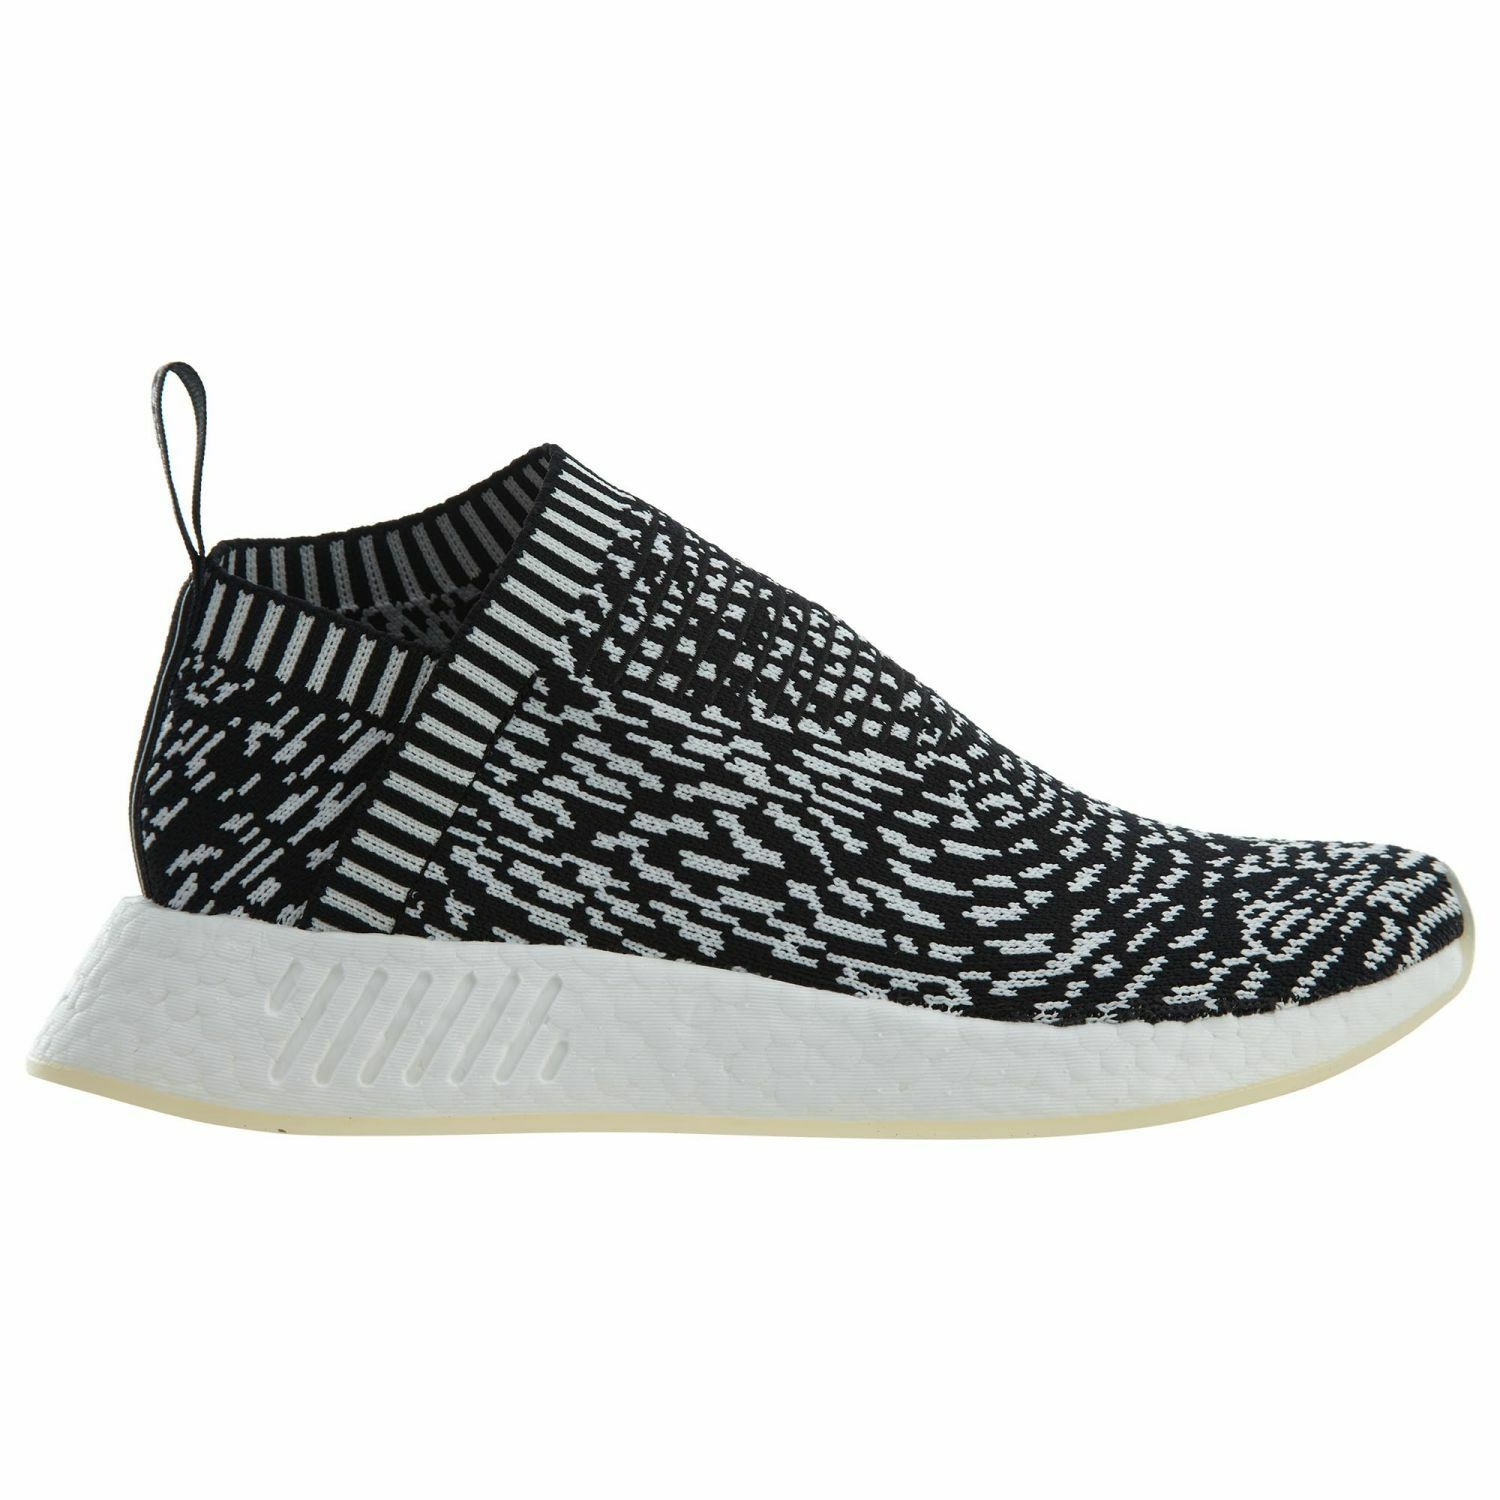 Adidas NMD CS2 PK Sashiko Zebra Mens BY3012 Black White Primeknit Shoes Size 8